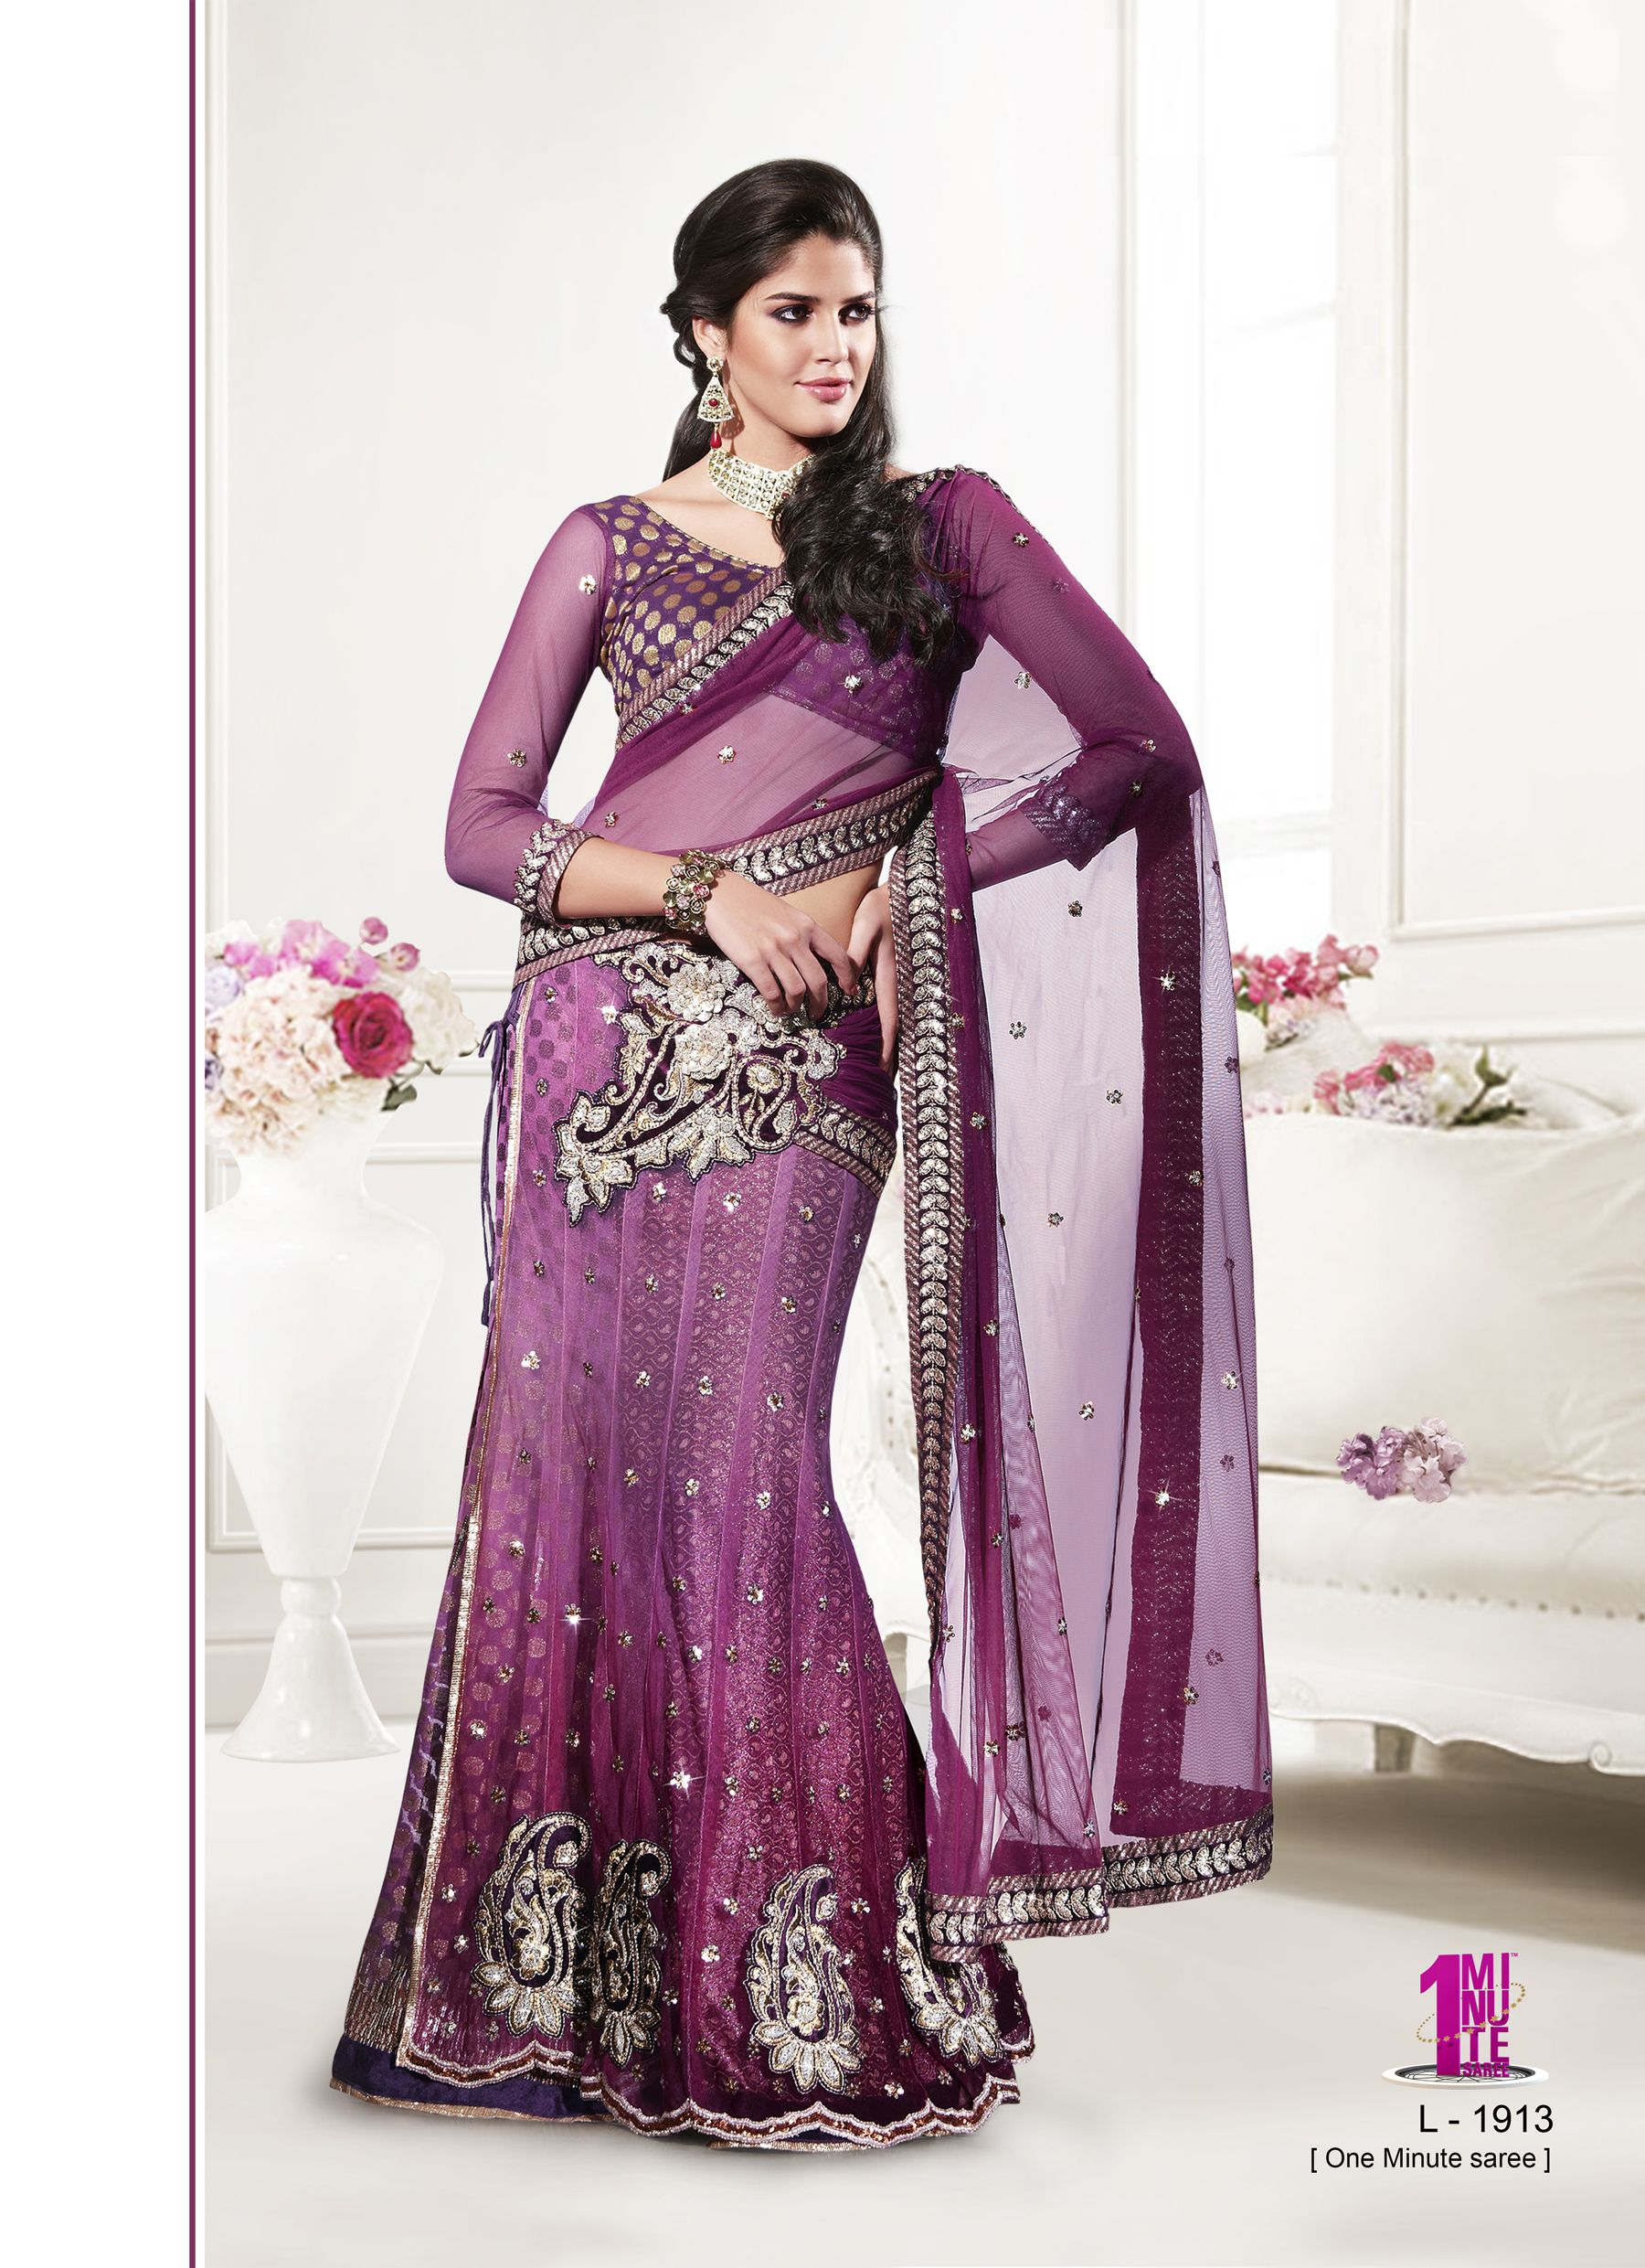 b4b2e9791f7f94 Buy latest designer Bollywood one minute saree at the best prices Bollywood sarees  online shopping with wholesale prices. #onlinesaree, #bollywoodsaree ...